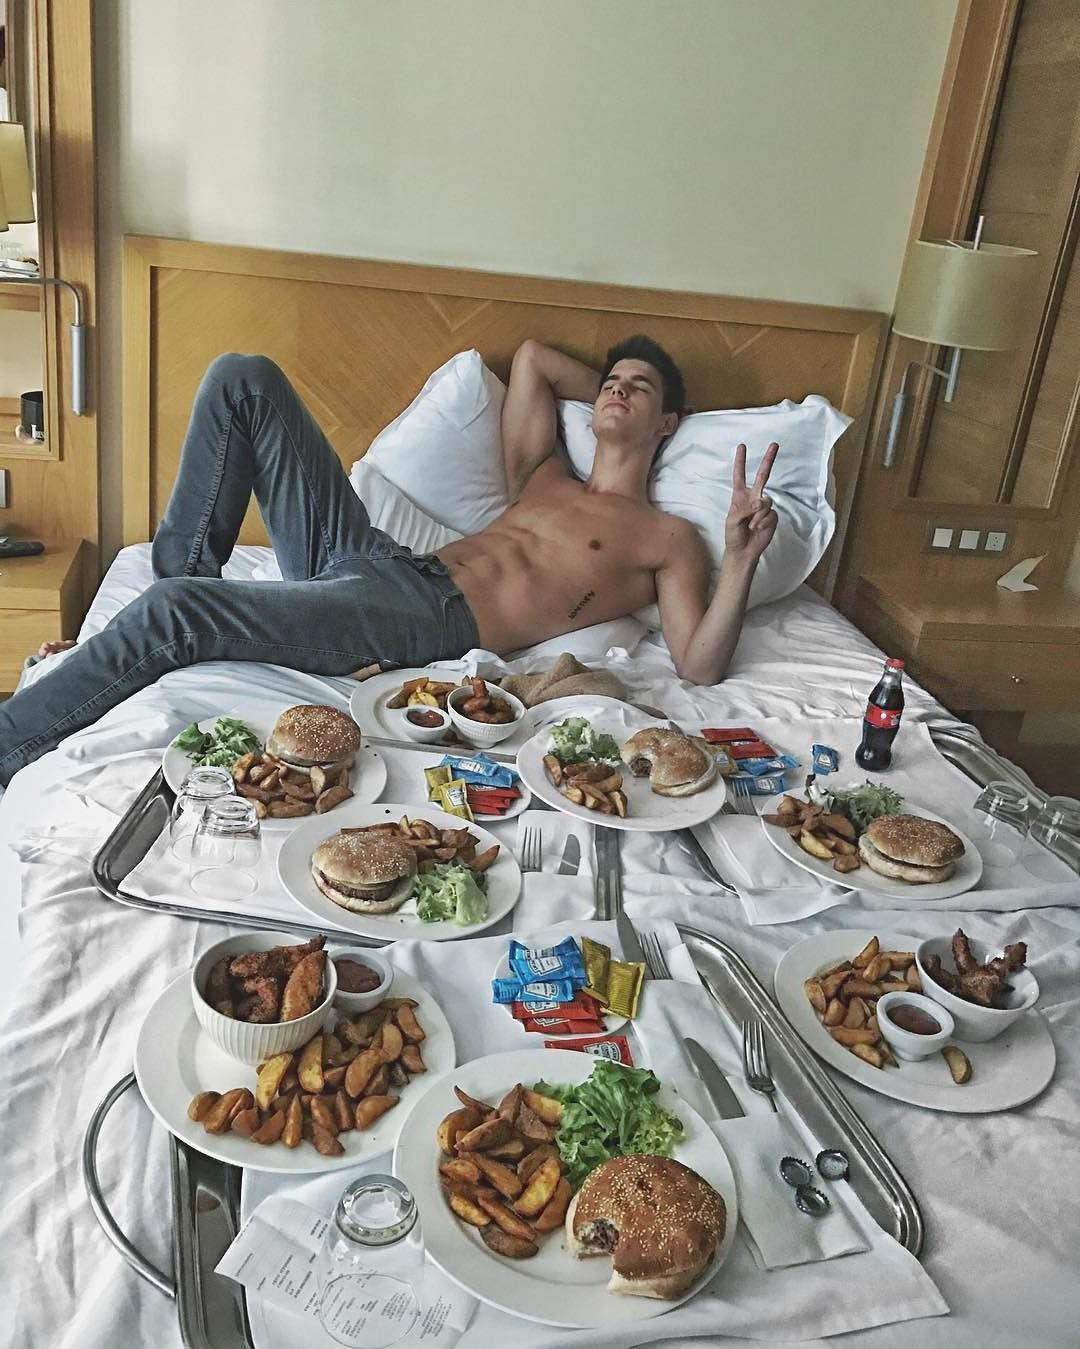 cute-boy-chillin-shirtless-laying-bed-jeans-food-hotel-room-fun